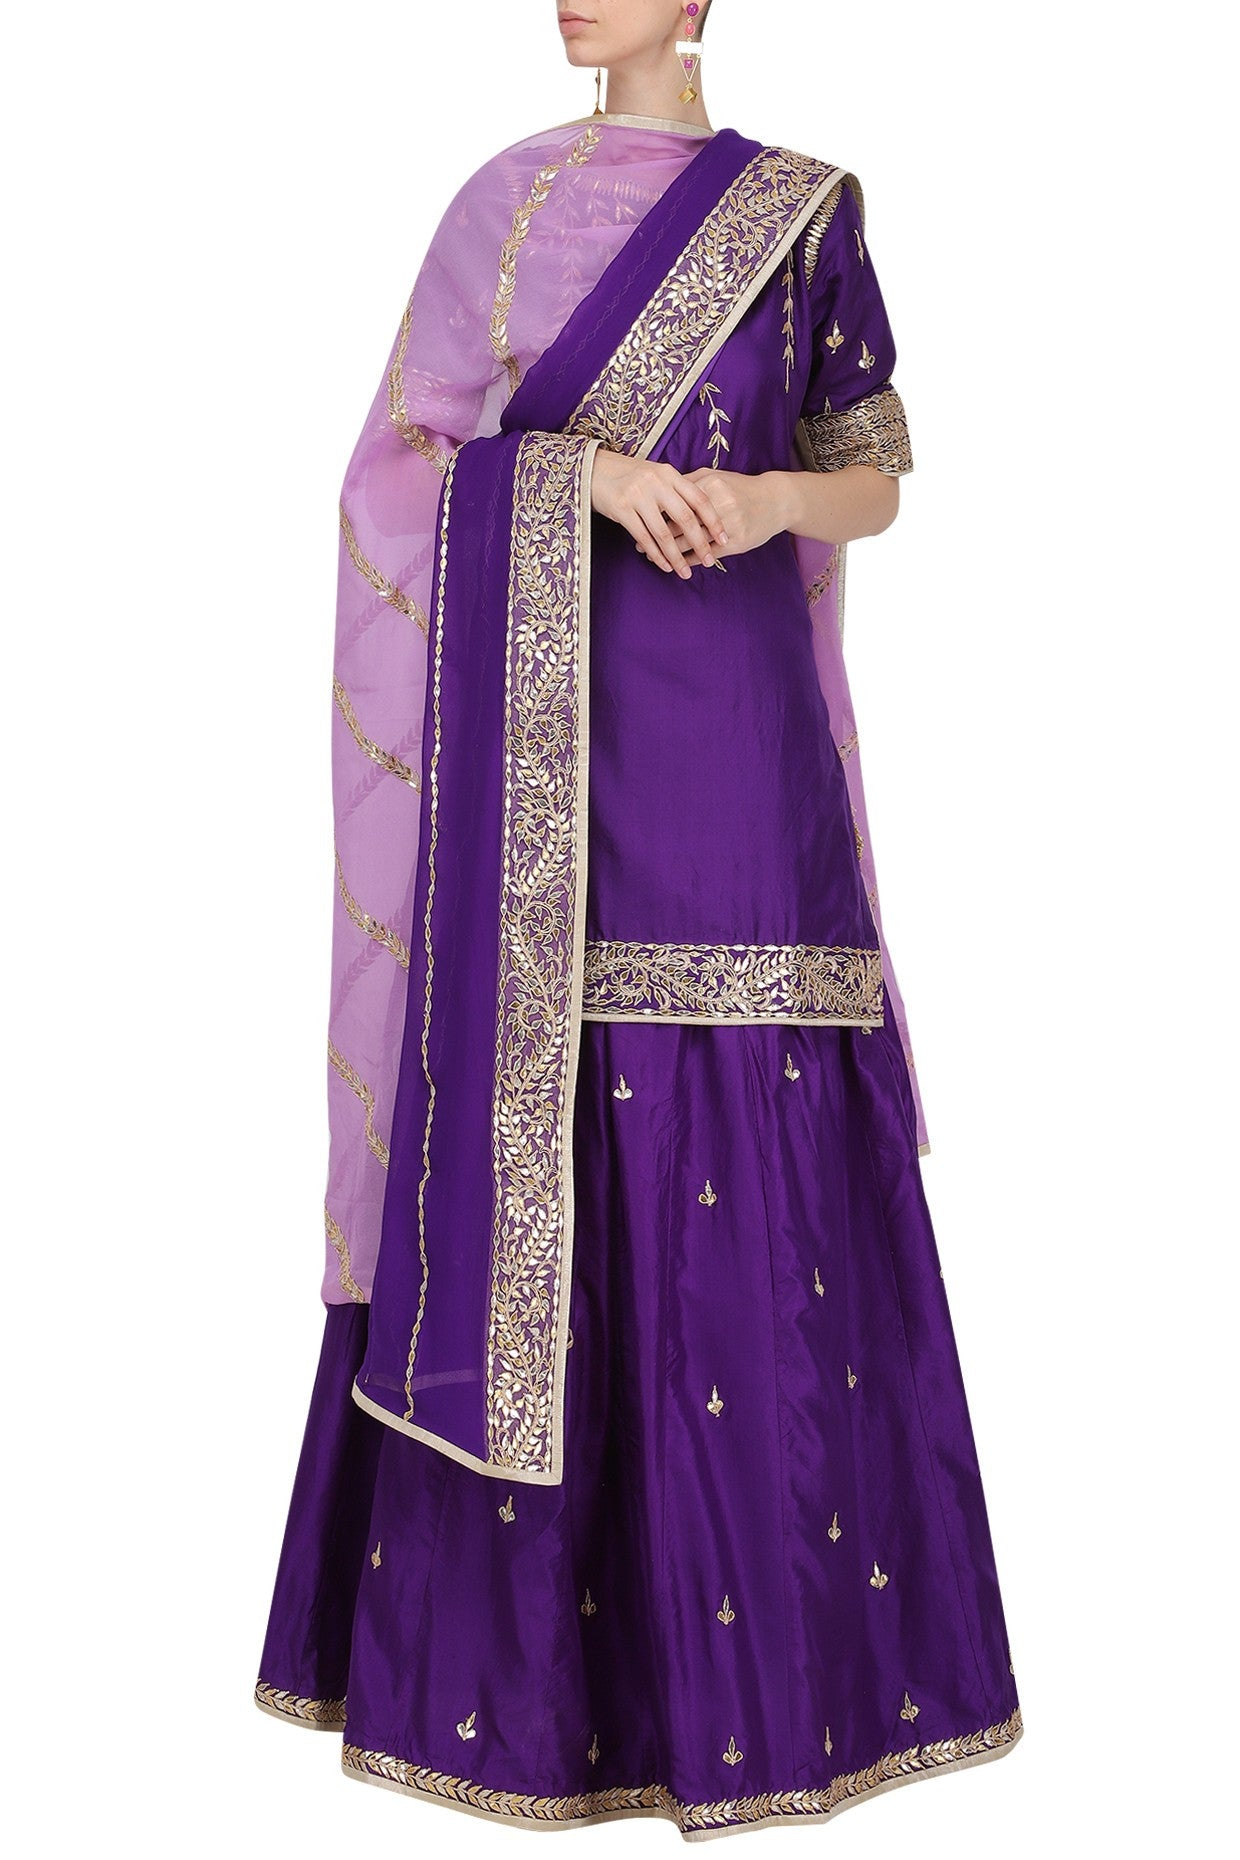 Pretty Purple Skirt Dress Set in Gota Work